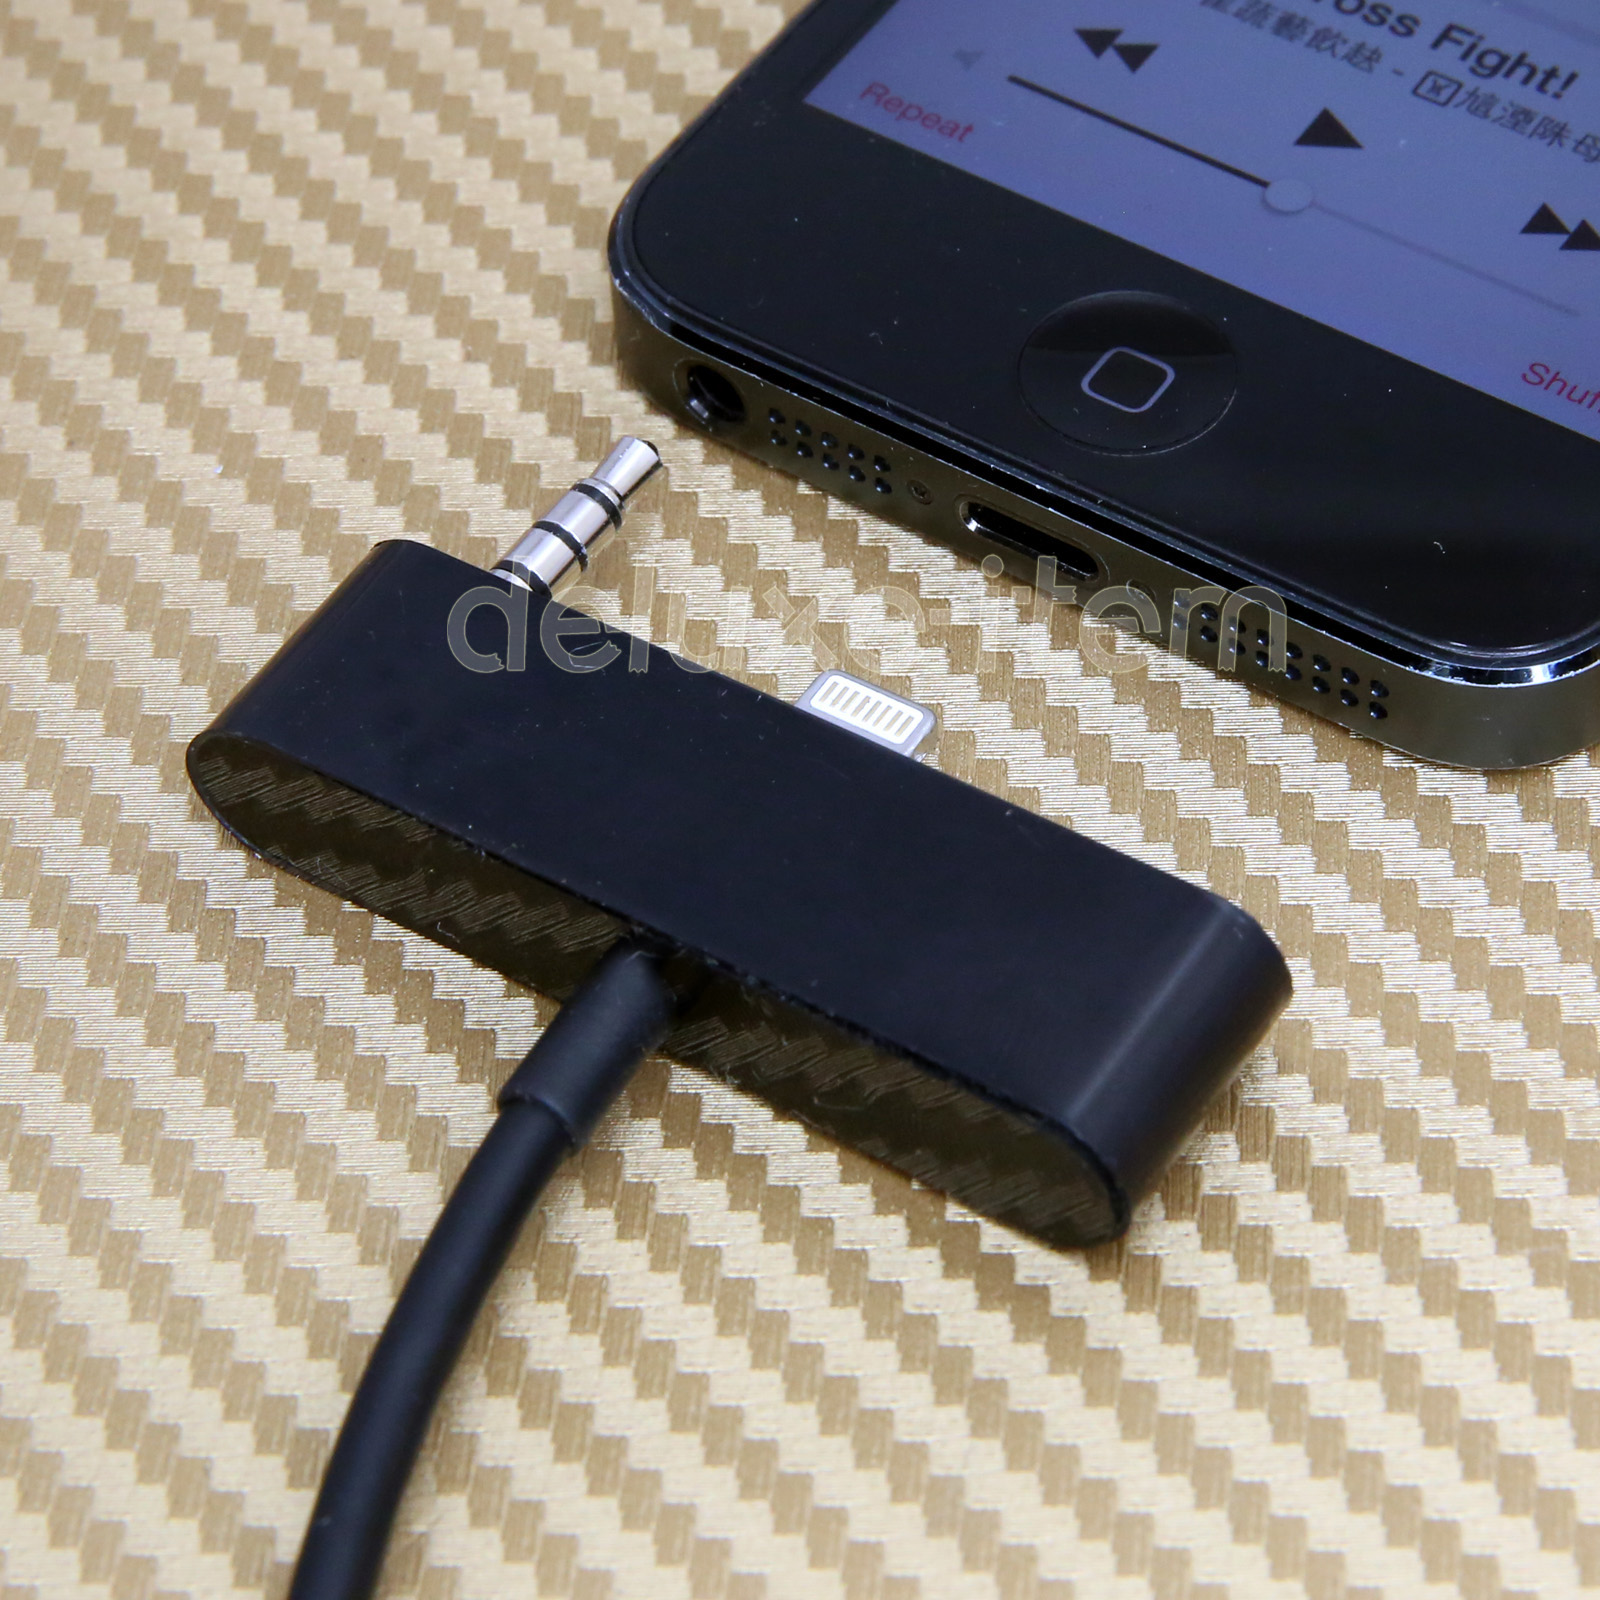 car stereo audio aux in 1 8 usb cable charger. Black Bedroom Furniture Sets. Home Design Ideas